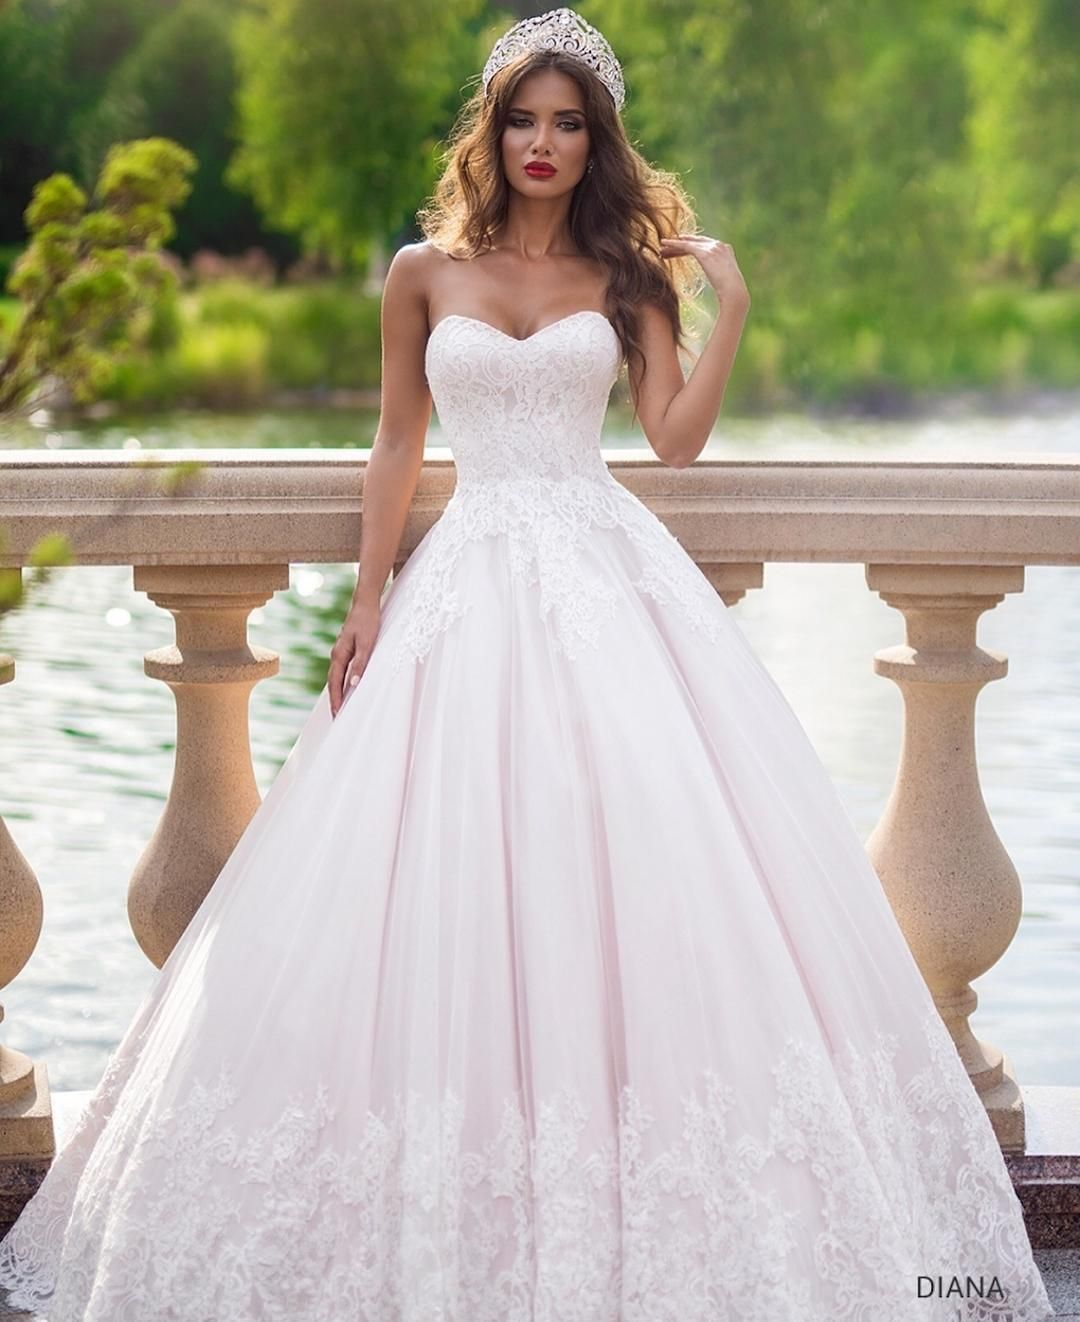 Ariamo Dress | Dresses | Pinterest | Wedding dress, Wedding and Weddings